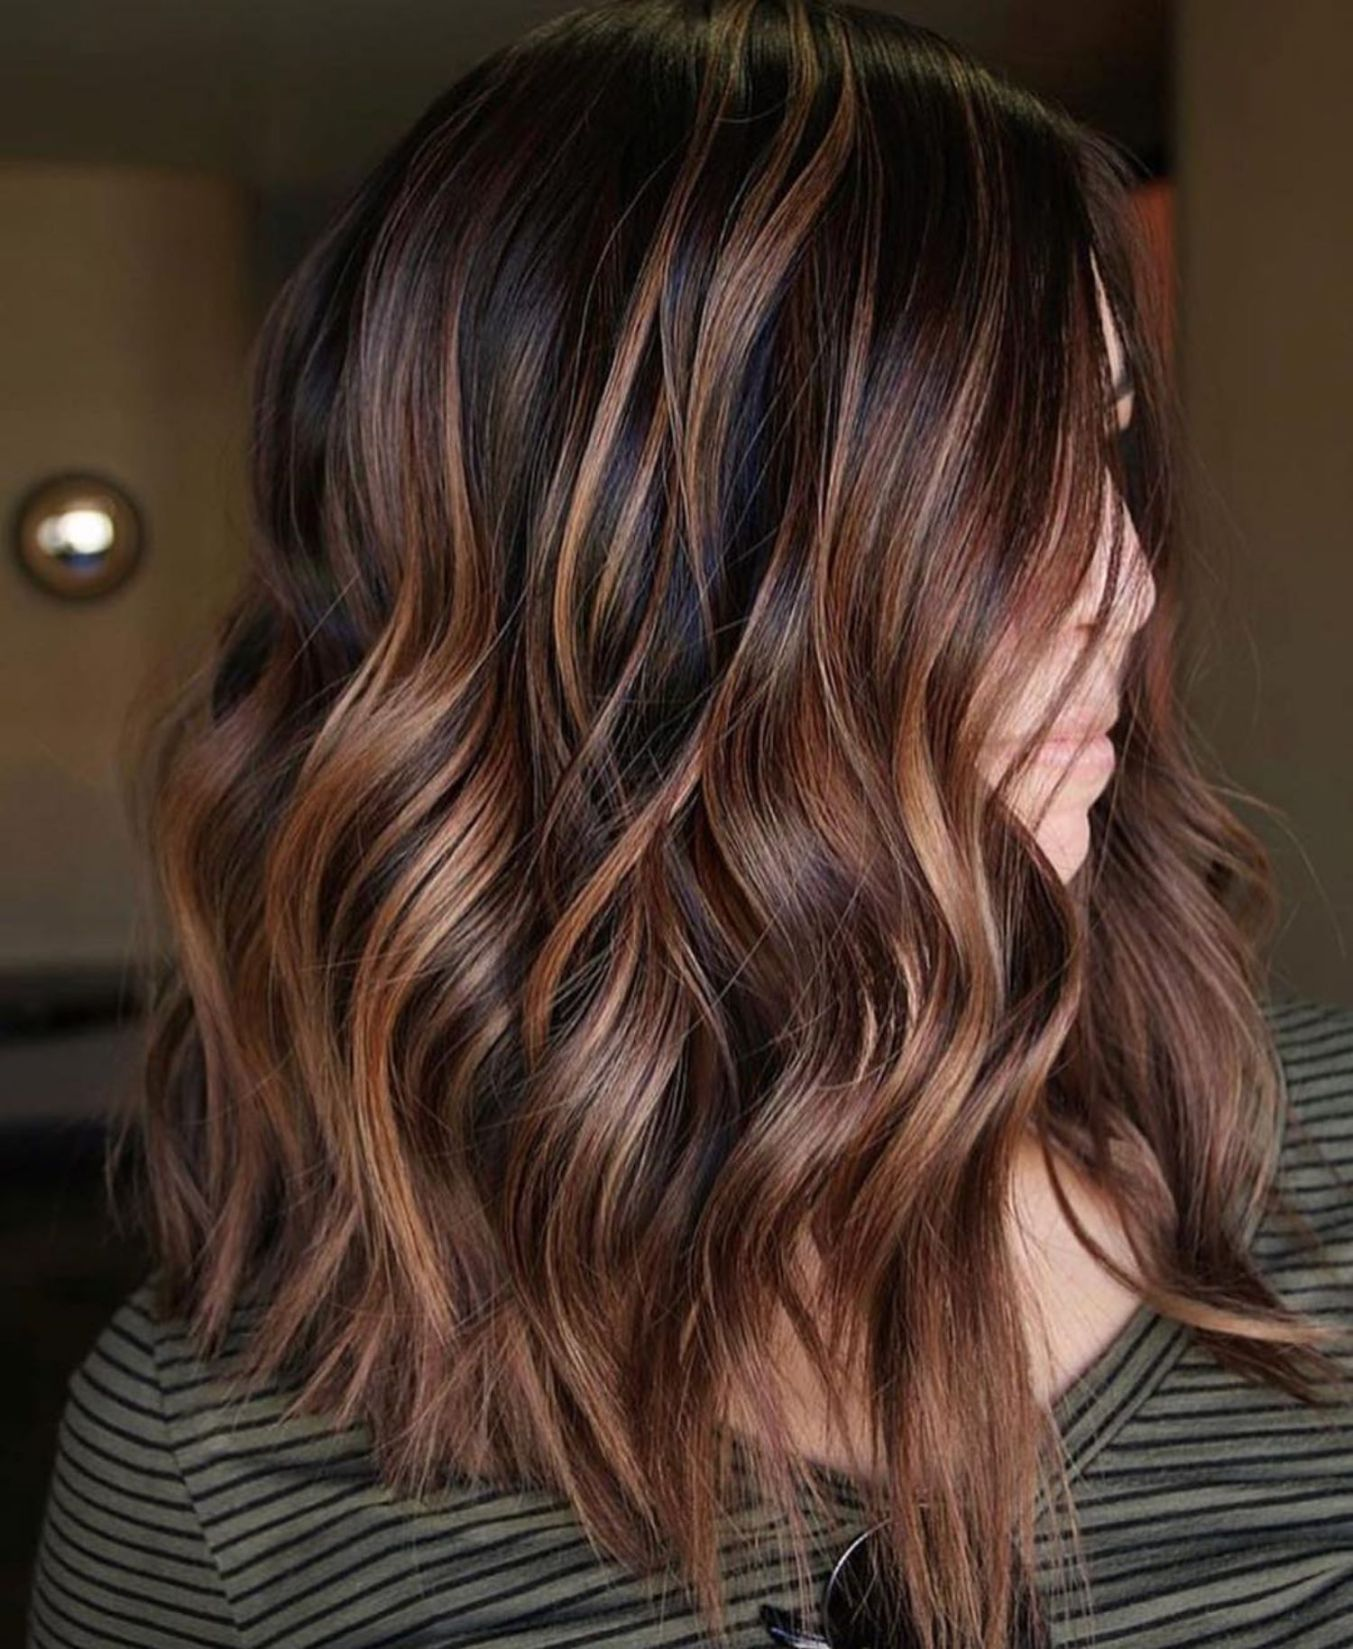 60 Hairstyles Featuring Dark Brown Hair With Highlights Chocolate Copper Balayage For Black Hair B In 2020 Brown Hair Balayage Medium Length Hair Styles Brown Balayage